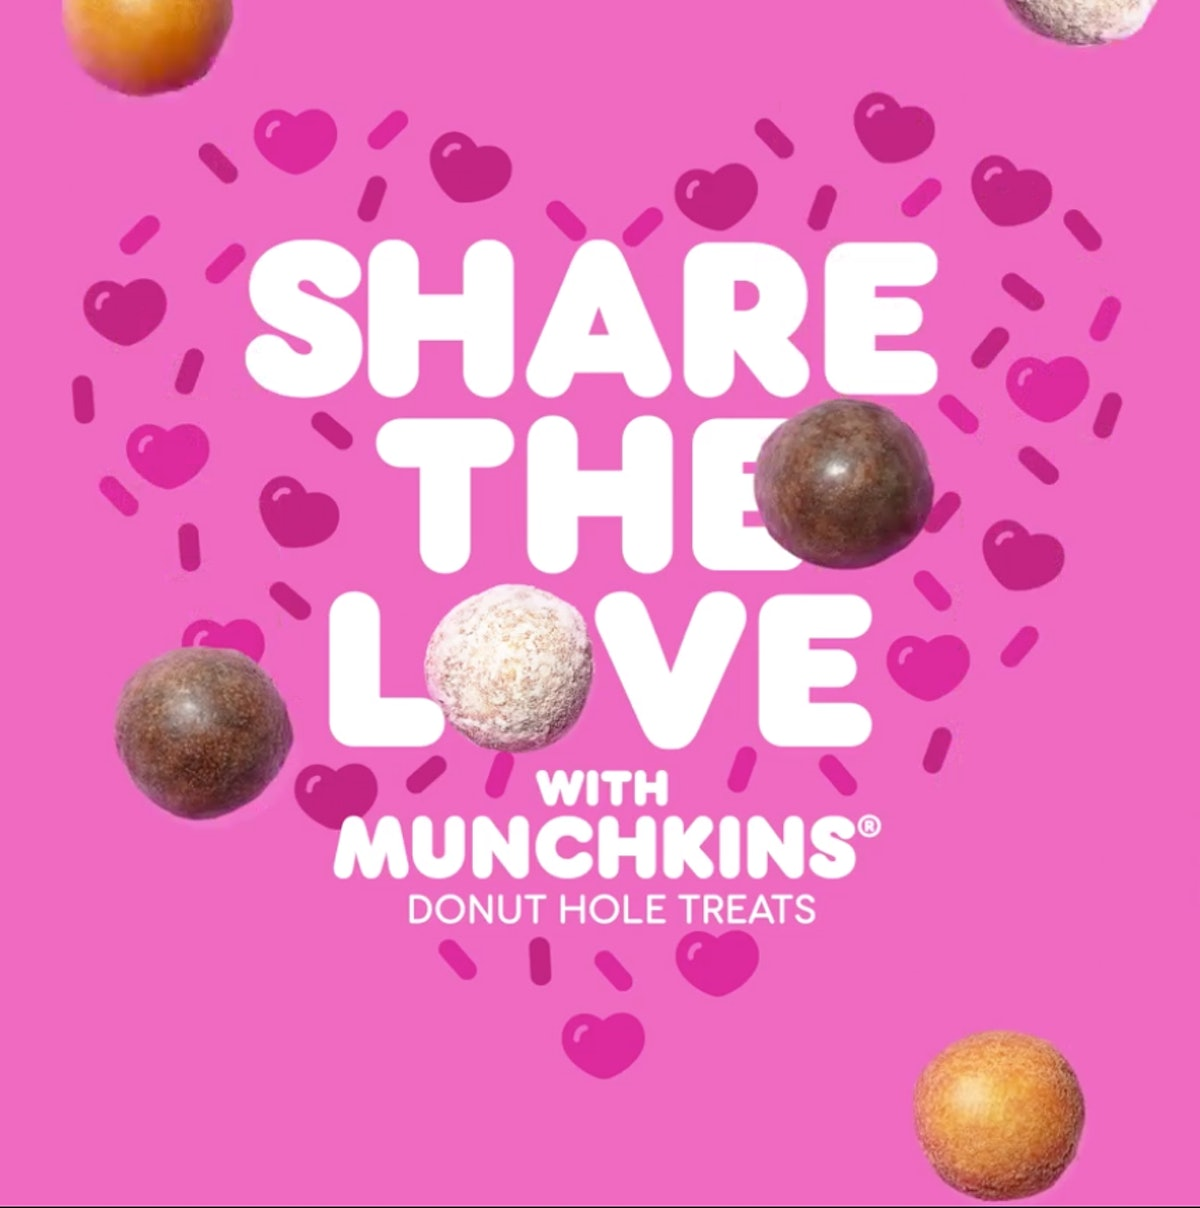 Dunkin's Valentine's Day 2020 Deal will help you score discounted donut holes.